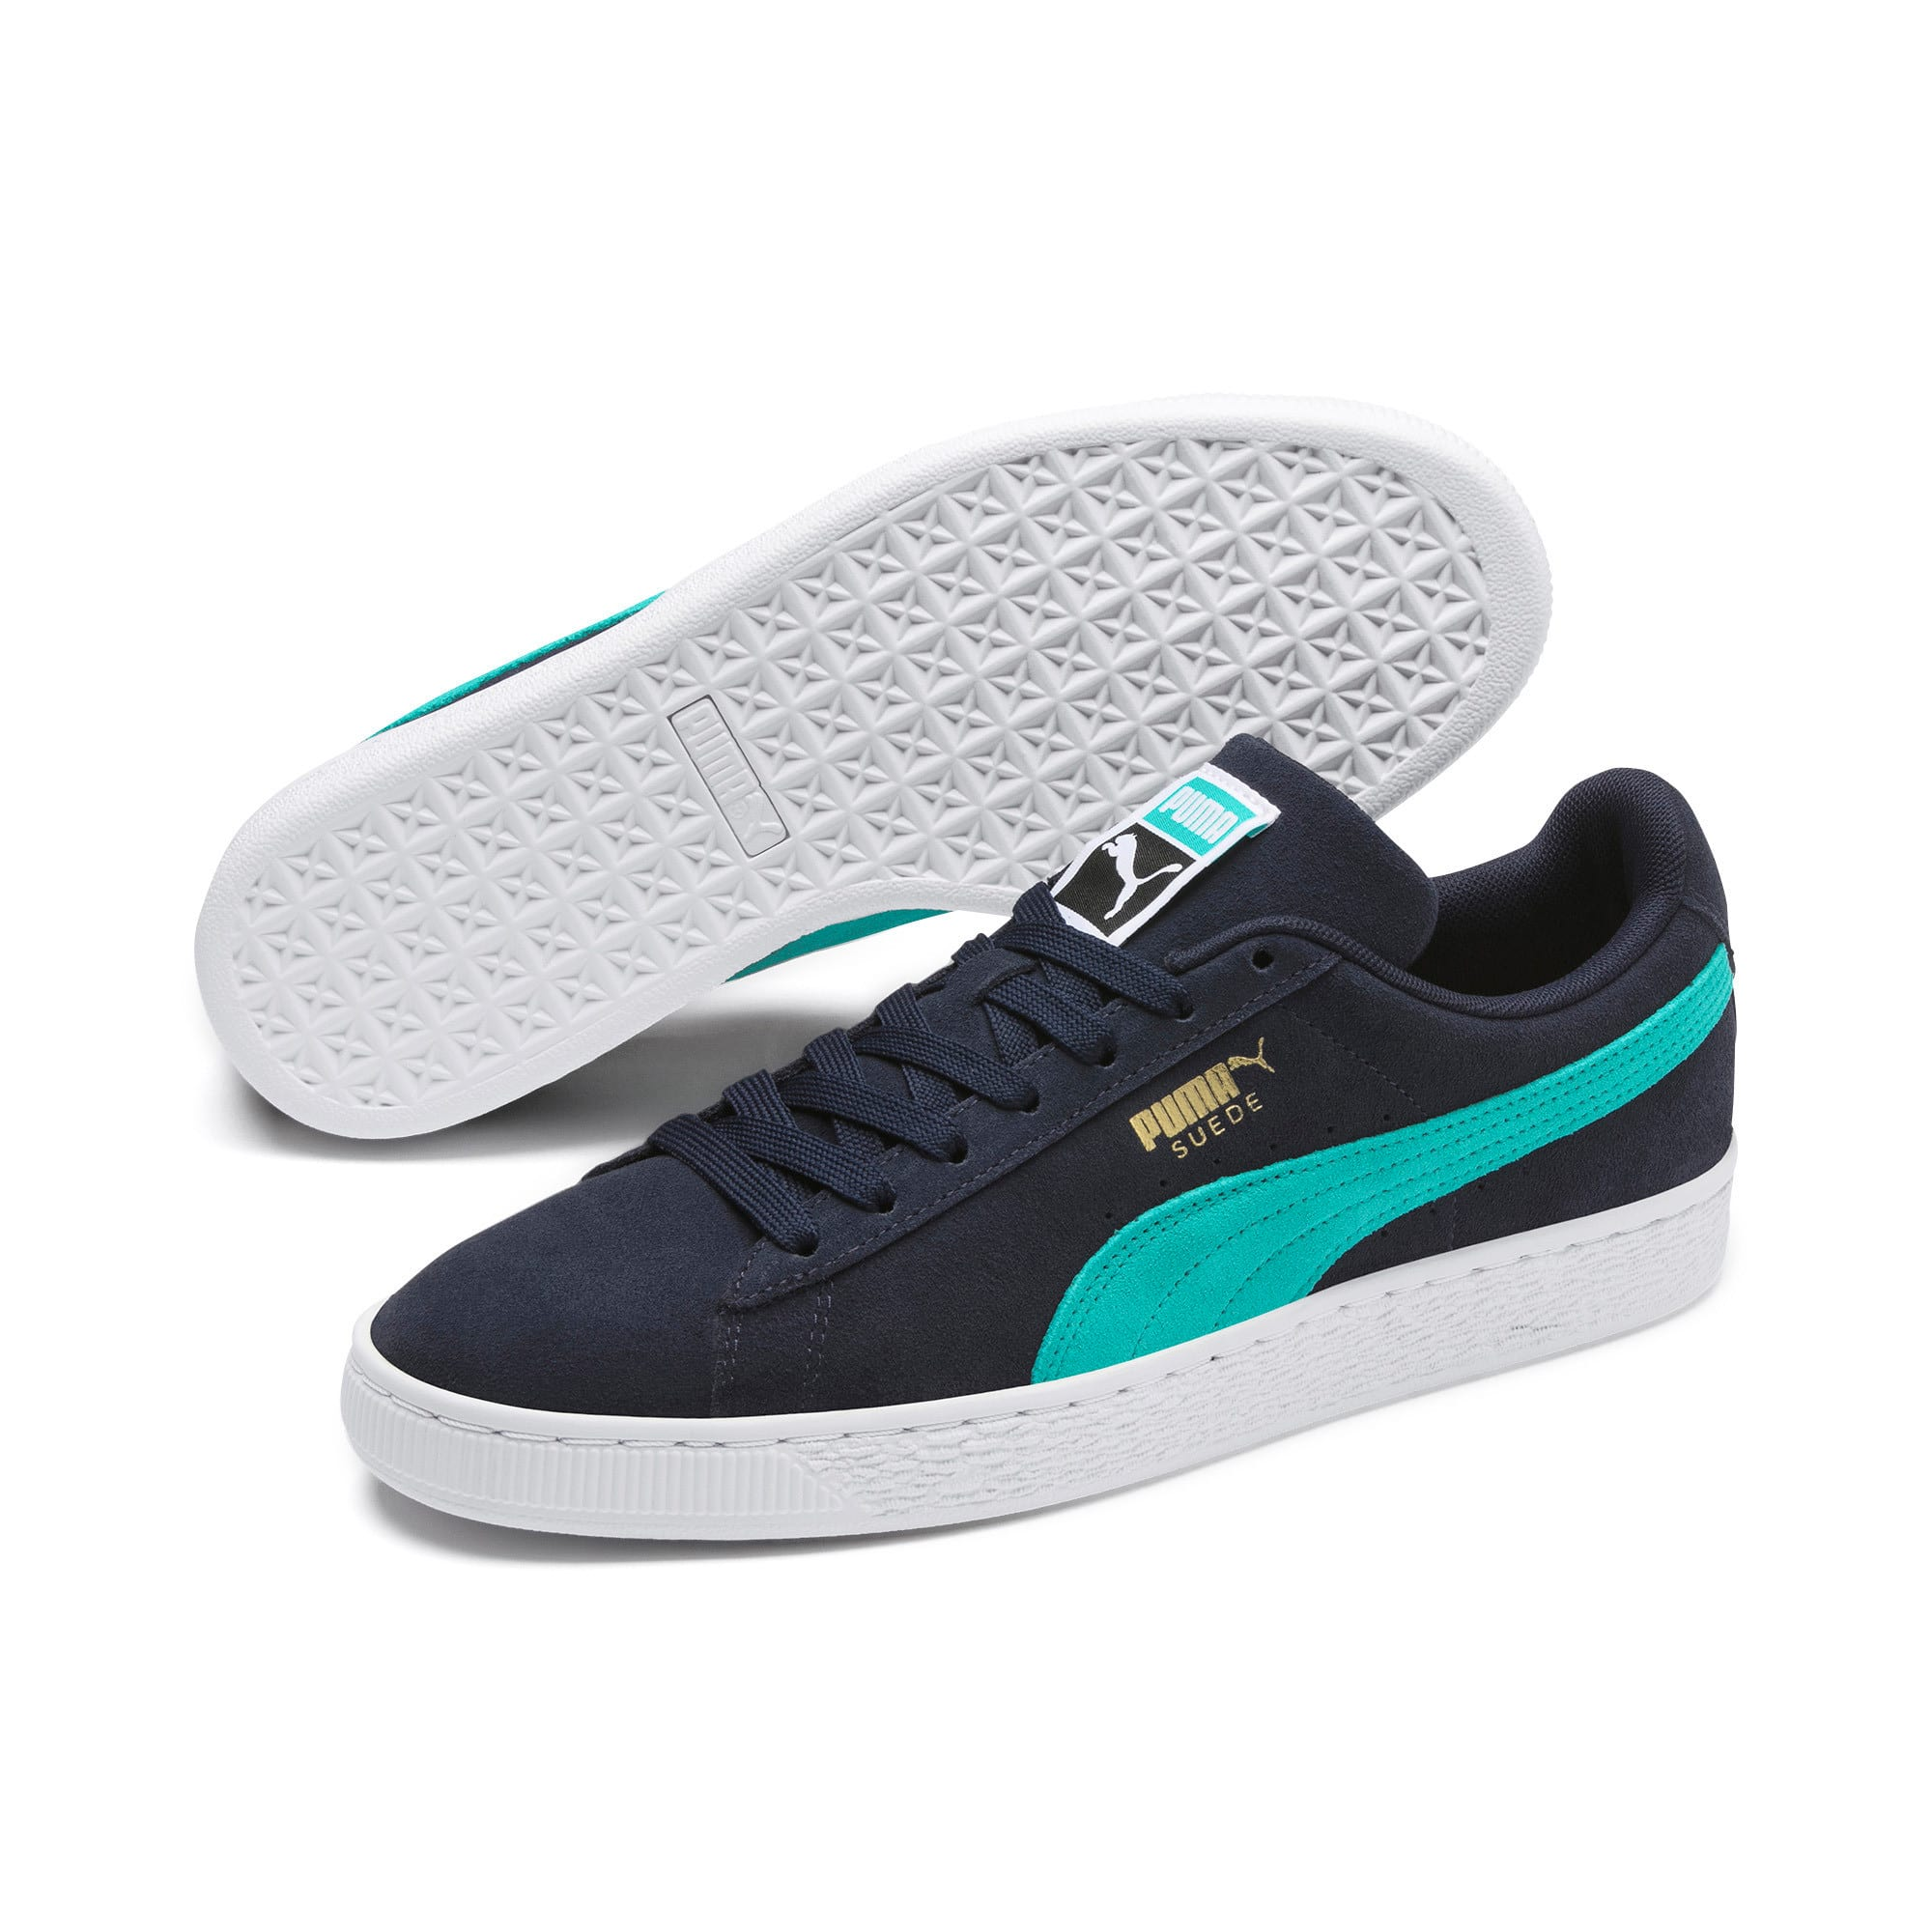 Thumbnail 3 of Suede Classic Sneakers, Peacoat-Blue Turquoise-P Wht, medium